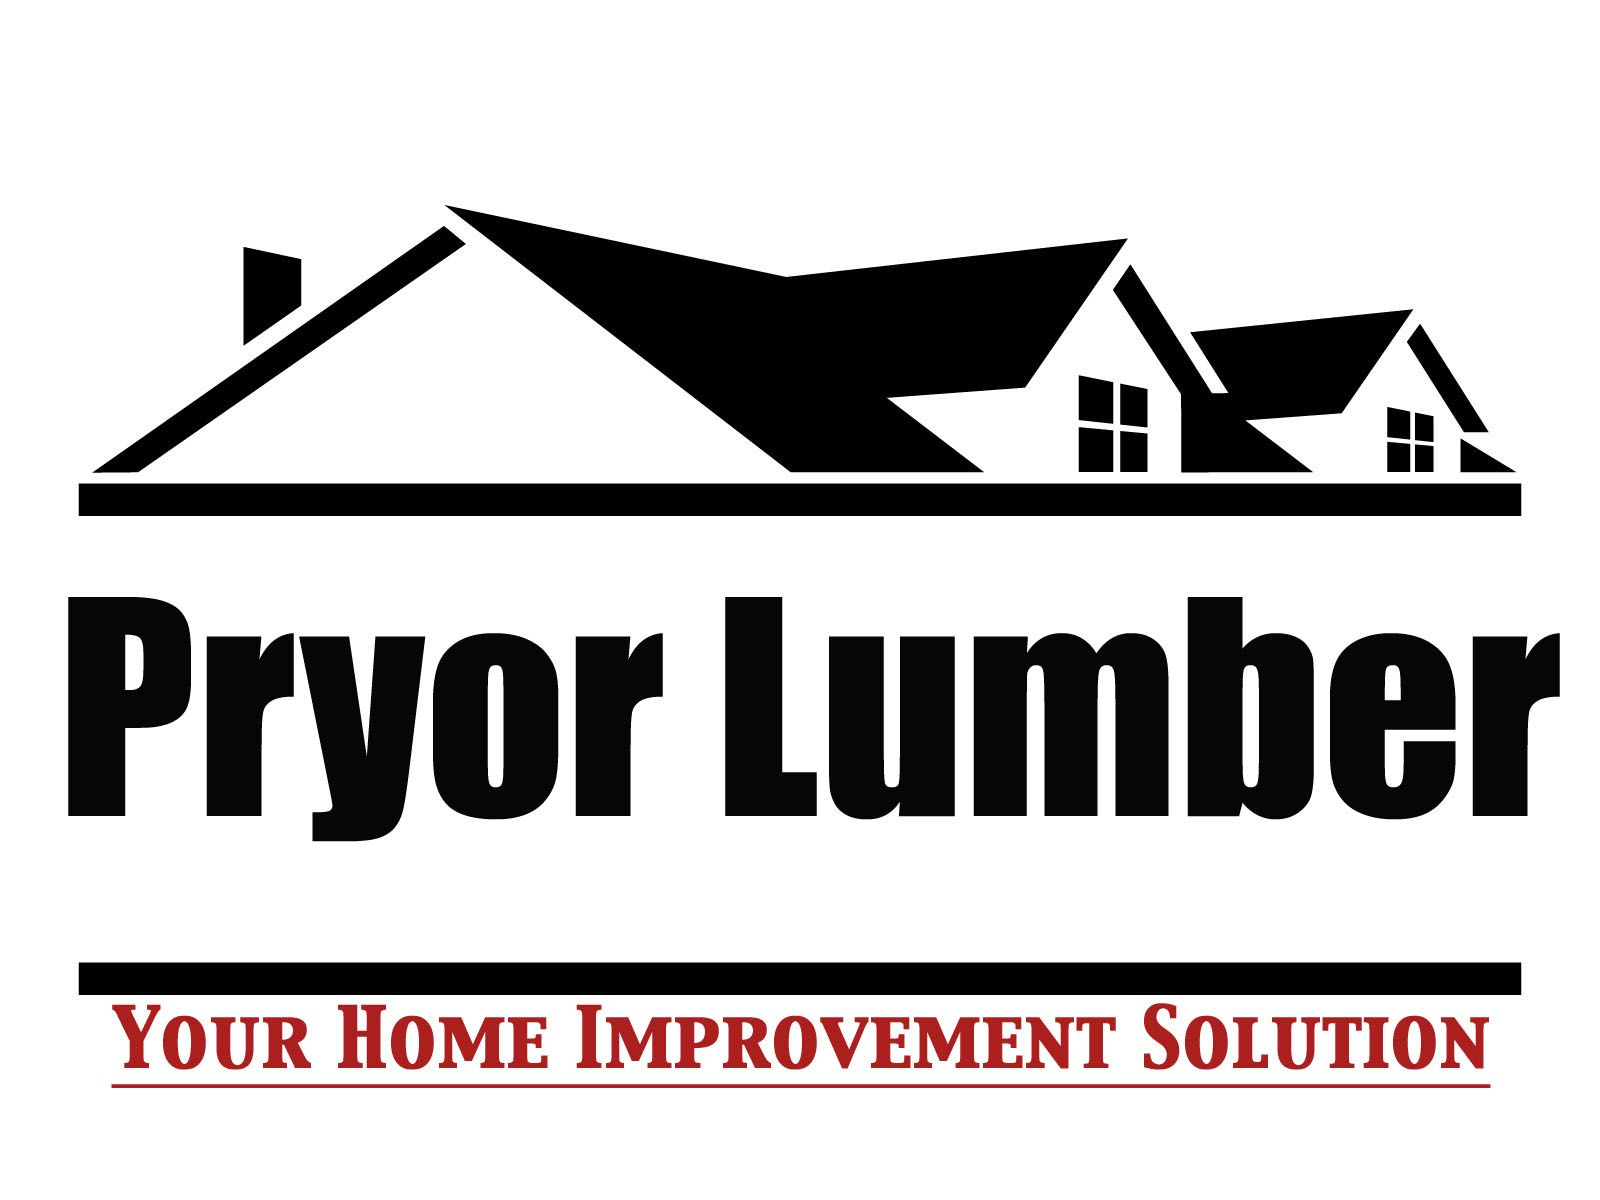 Home Improvement Companies Logos - info on affording house ...